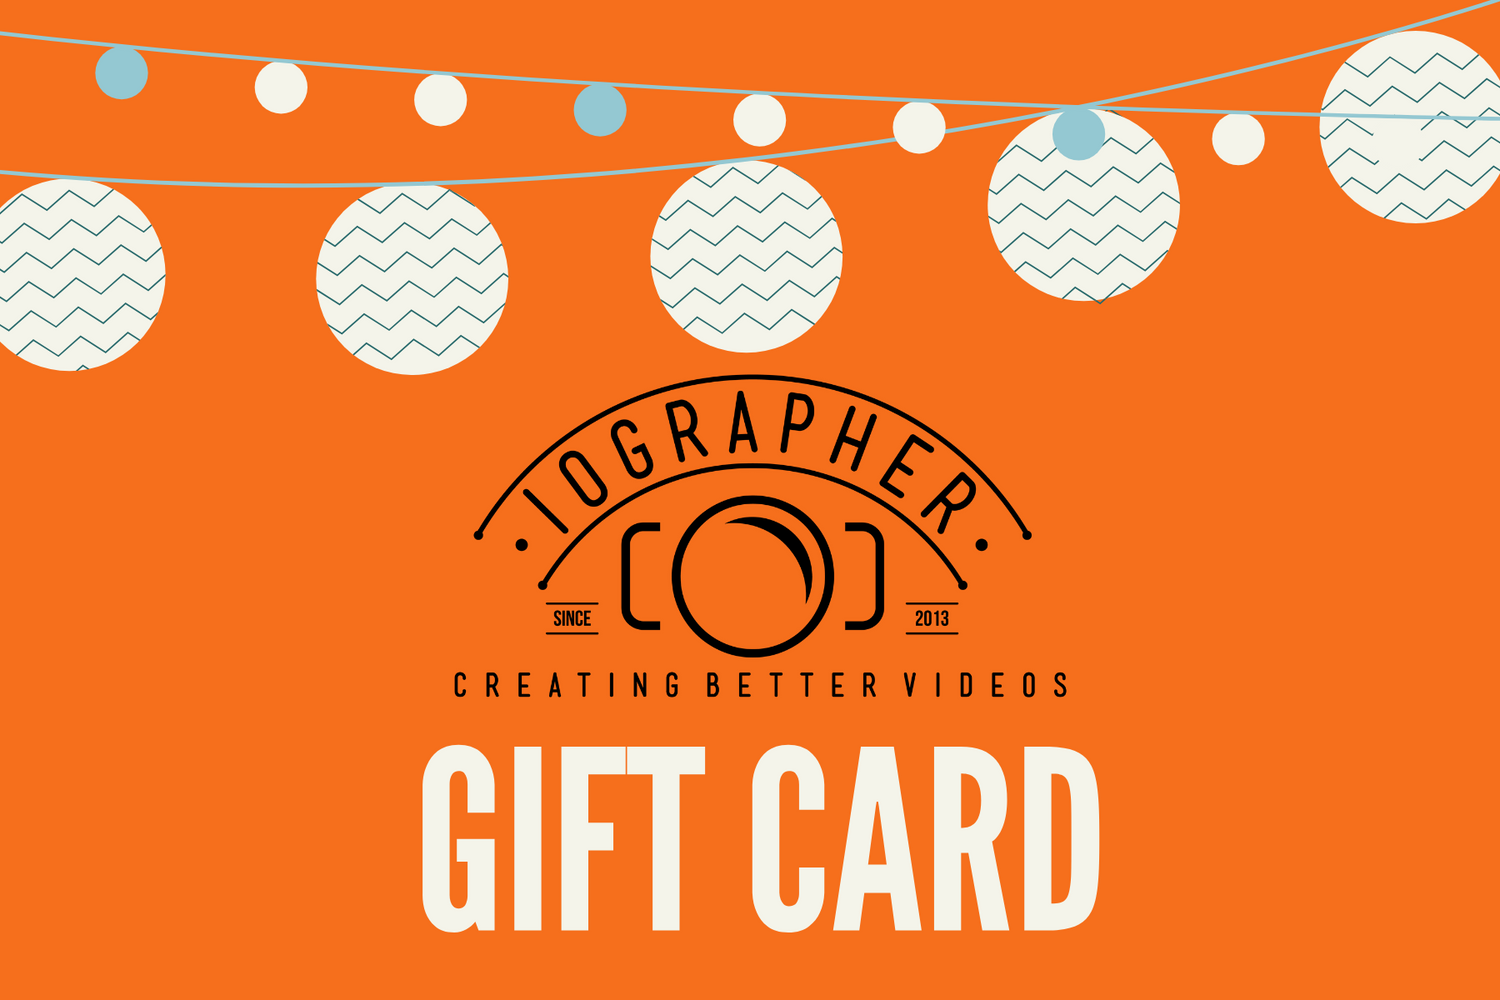 iOgrapher Gift Card